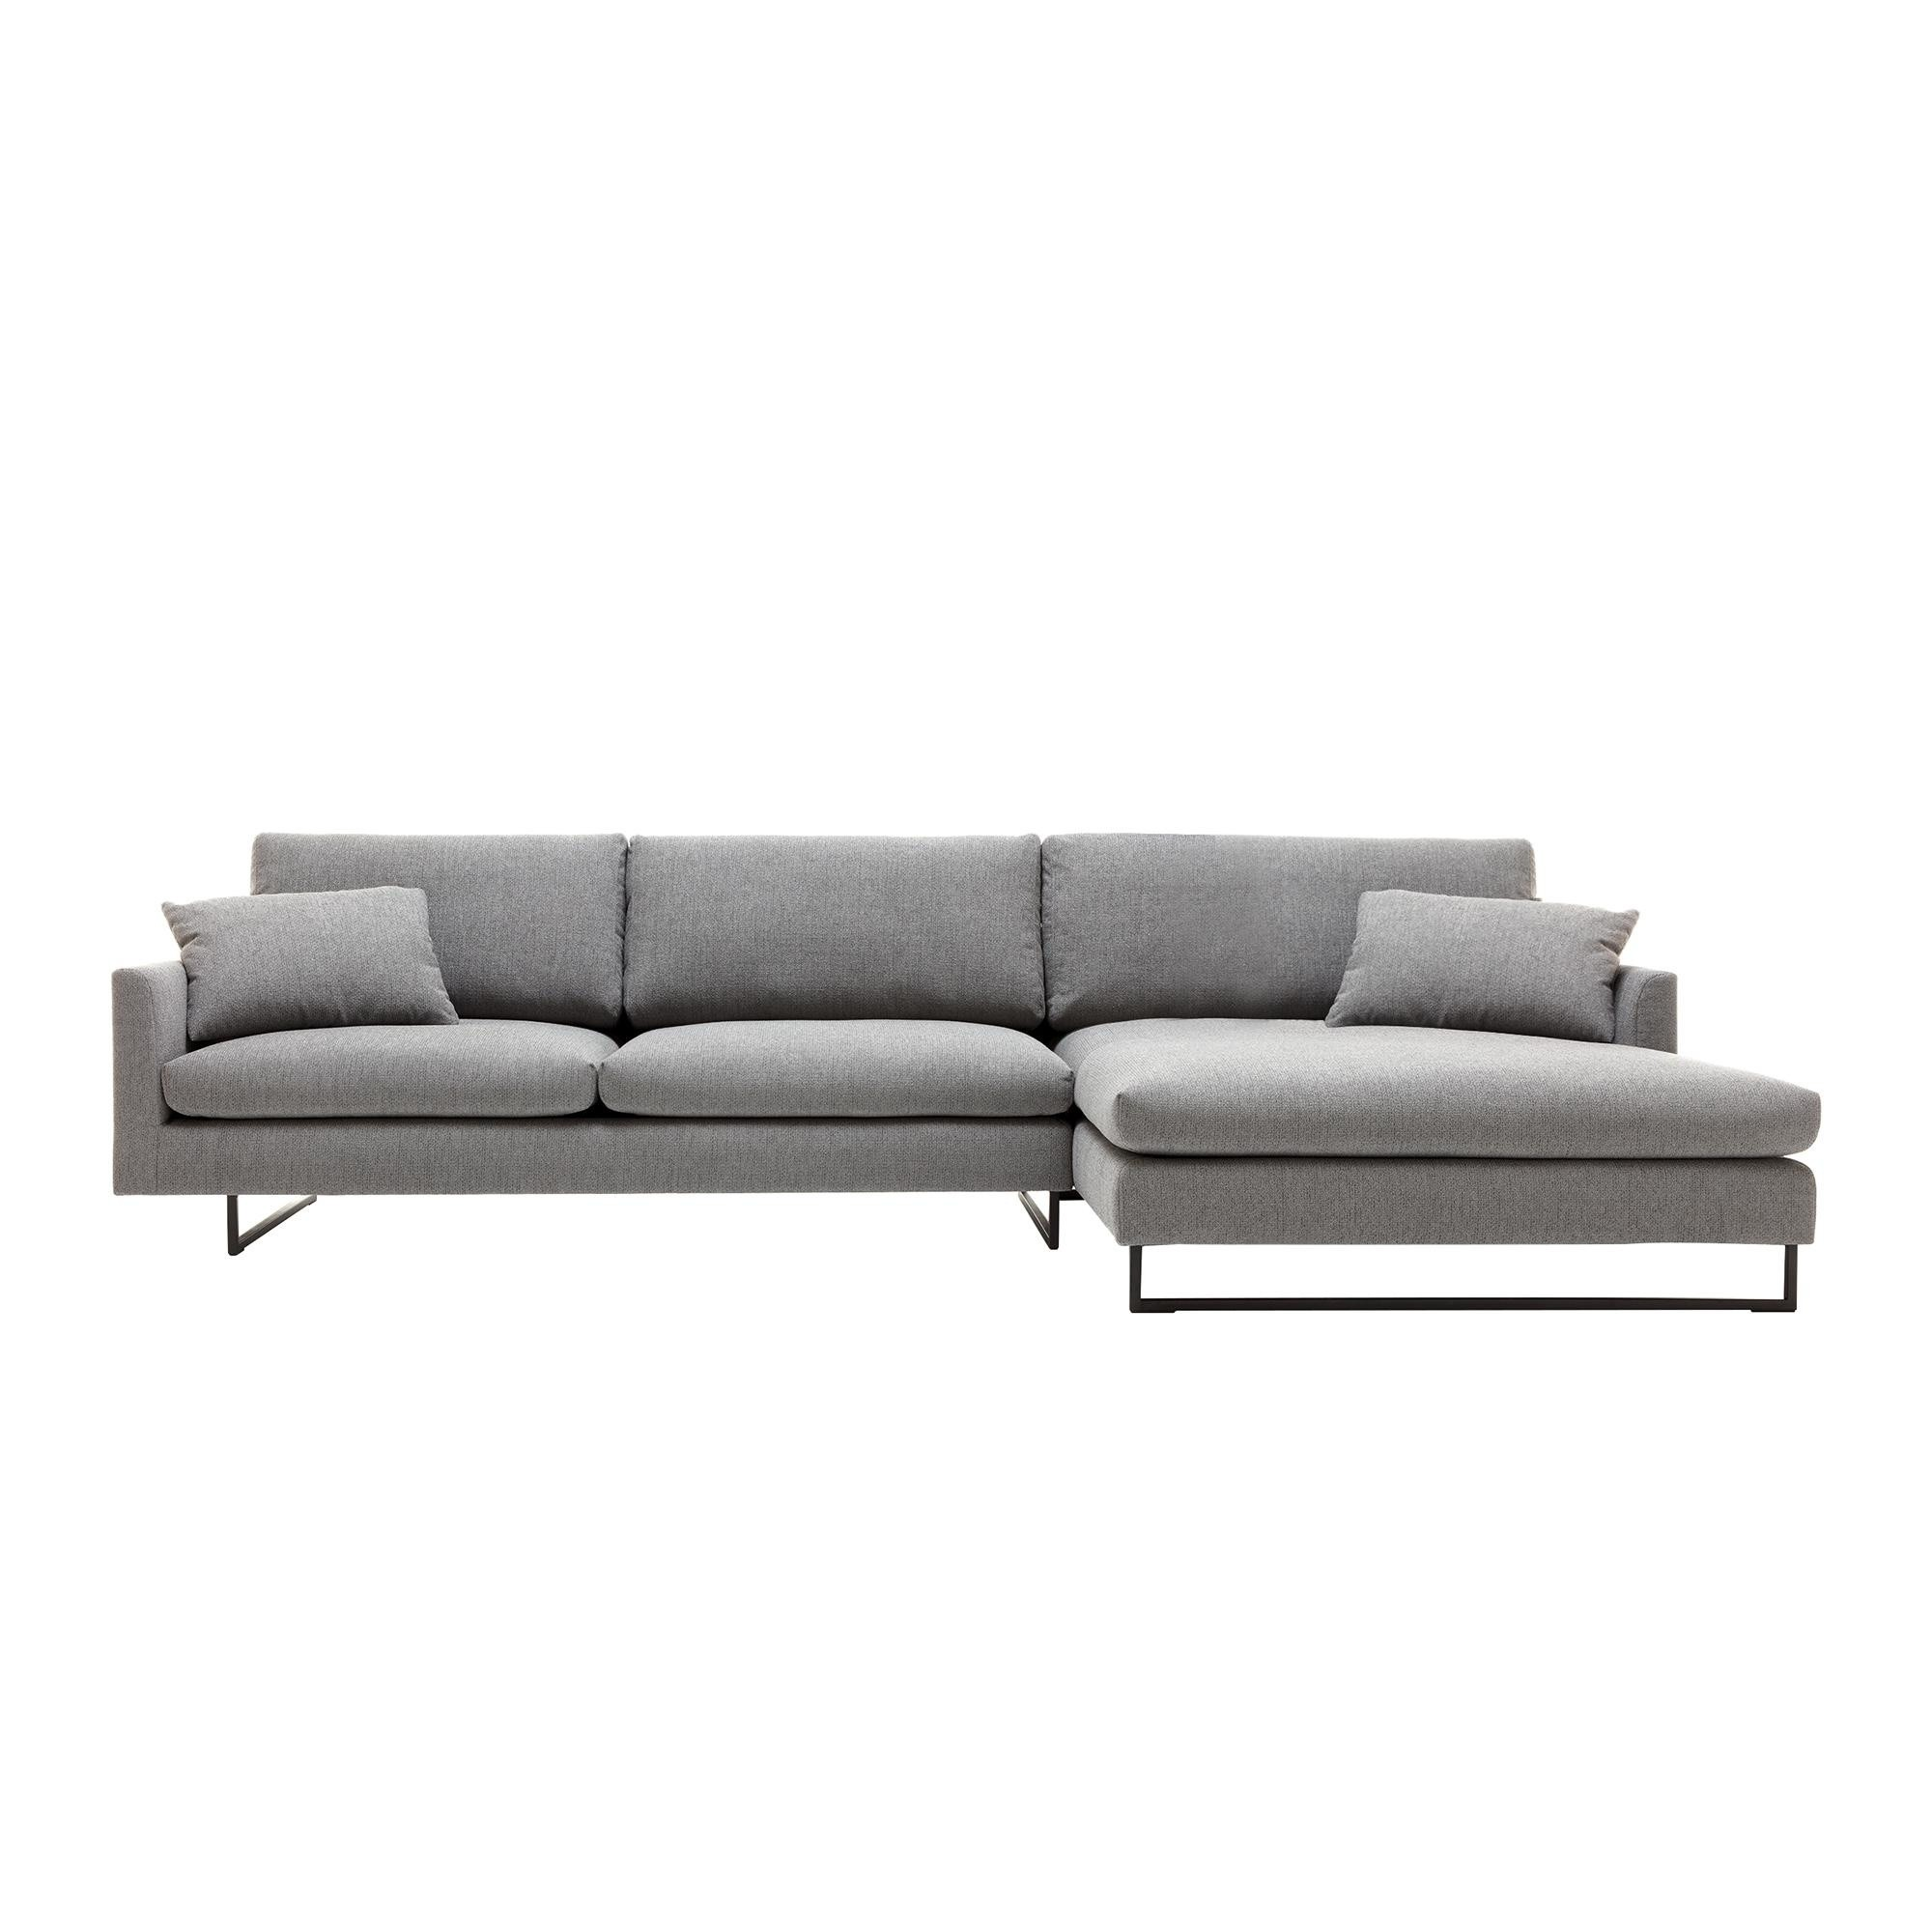 Freistil Rolf Benz Freistil 134 Loungesofa 330x177cm Ambientedirect